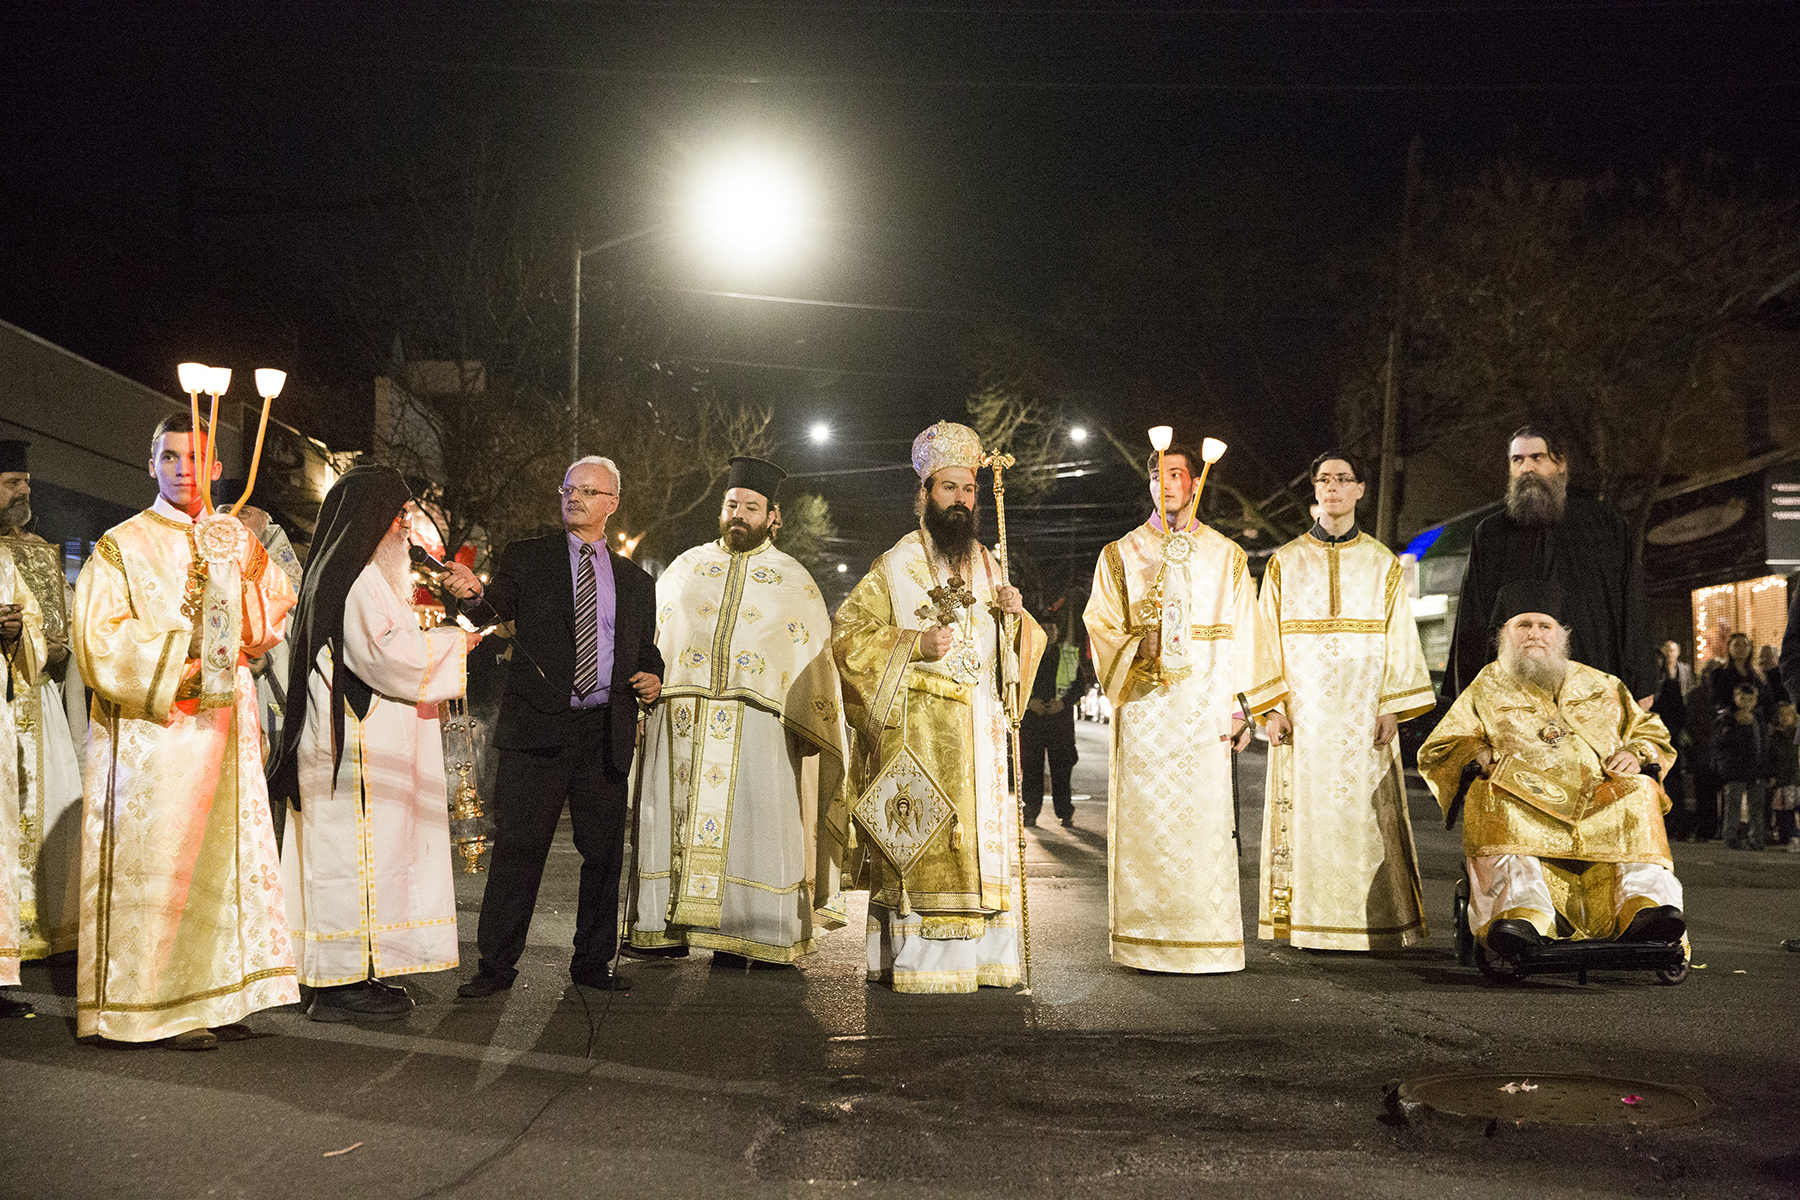 April 14, 2017. Priests stand while procession pauses at Ditmars Boulevard and 31st Street.